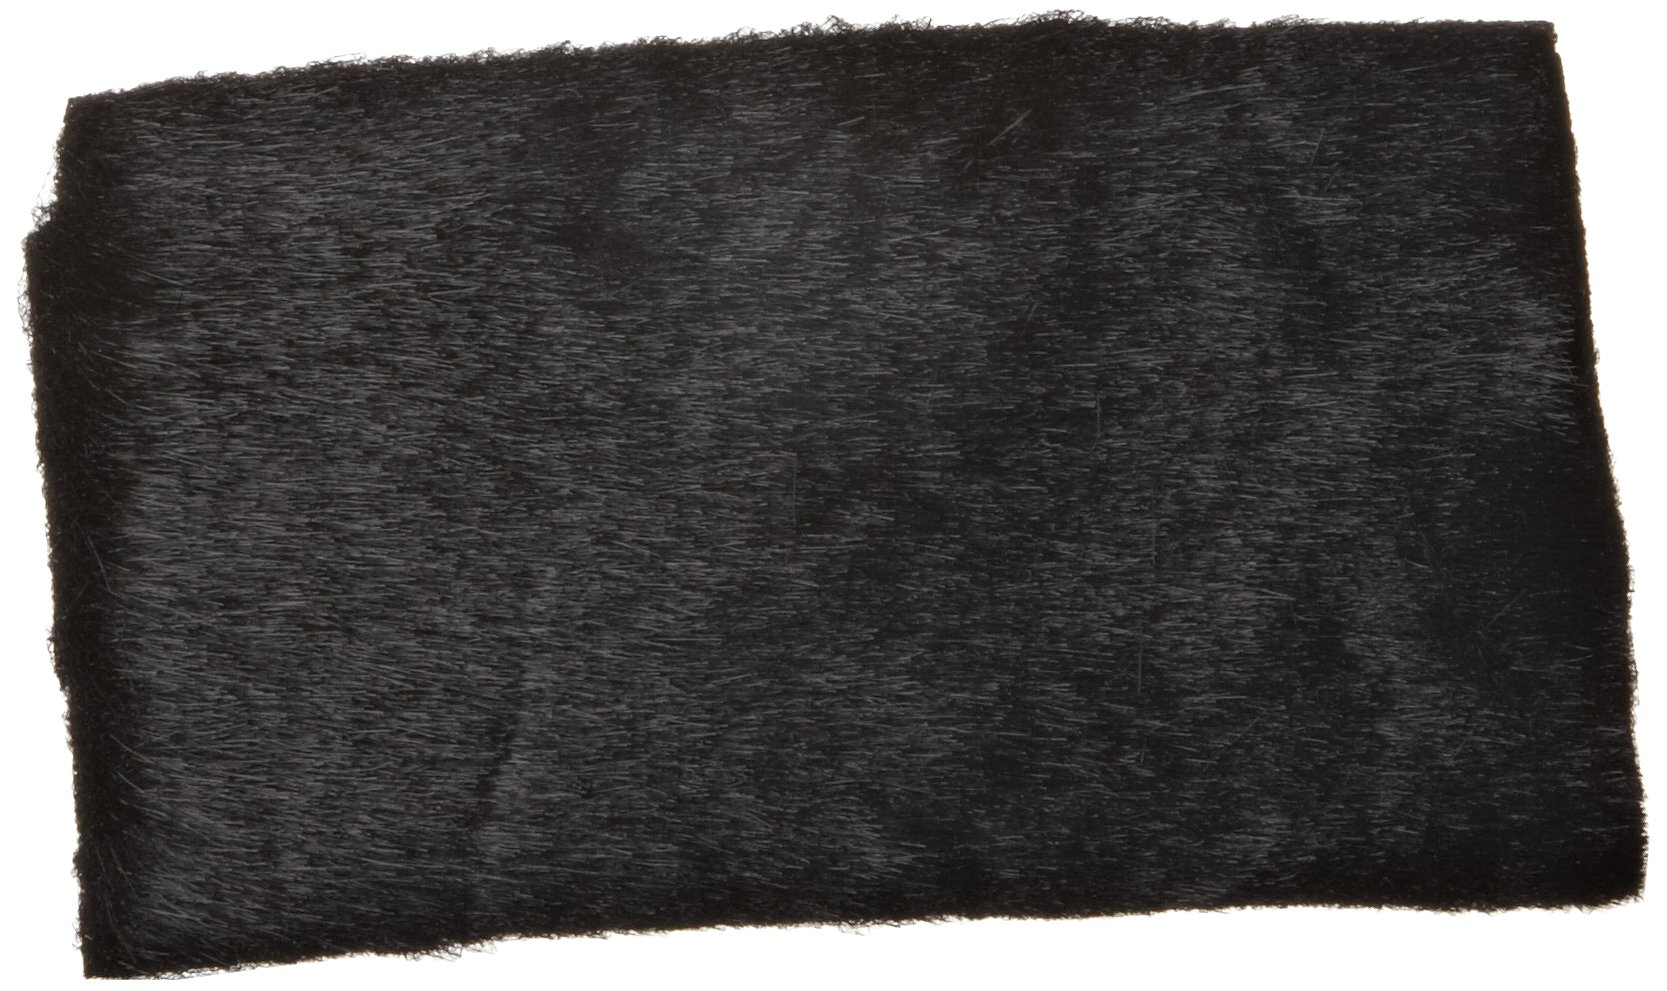 American Educational Faux Animal Fur Friction Pad 3 Length 5'' Width (Bundle of 5)''